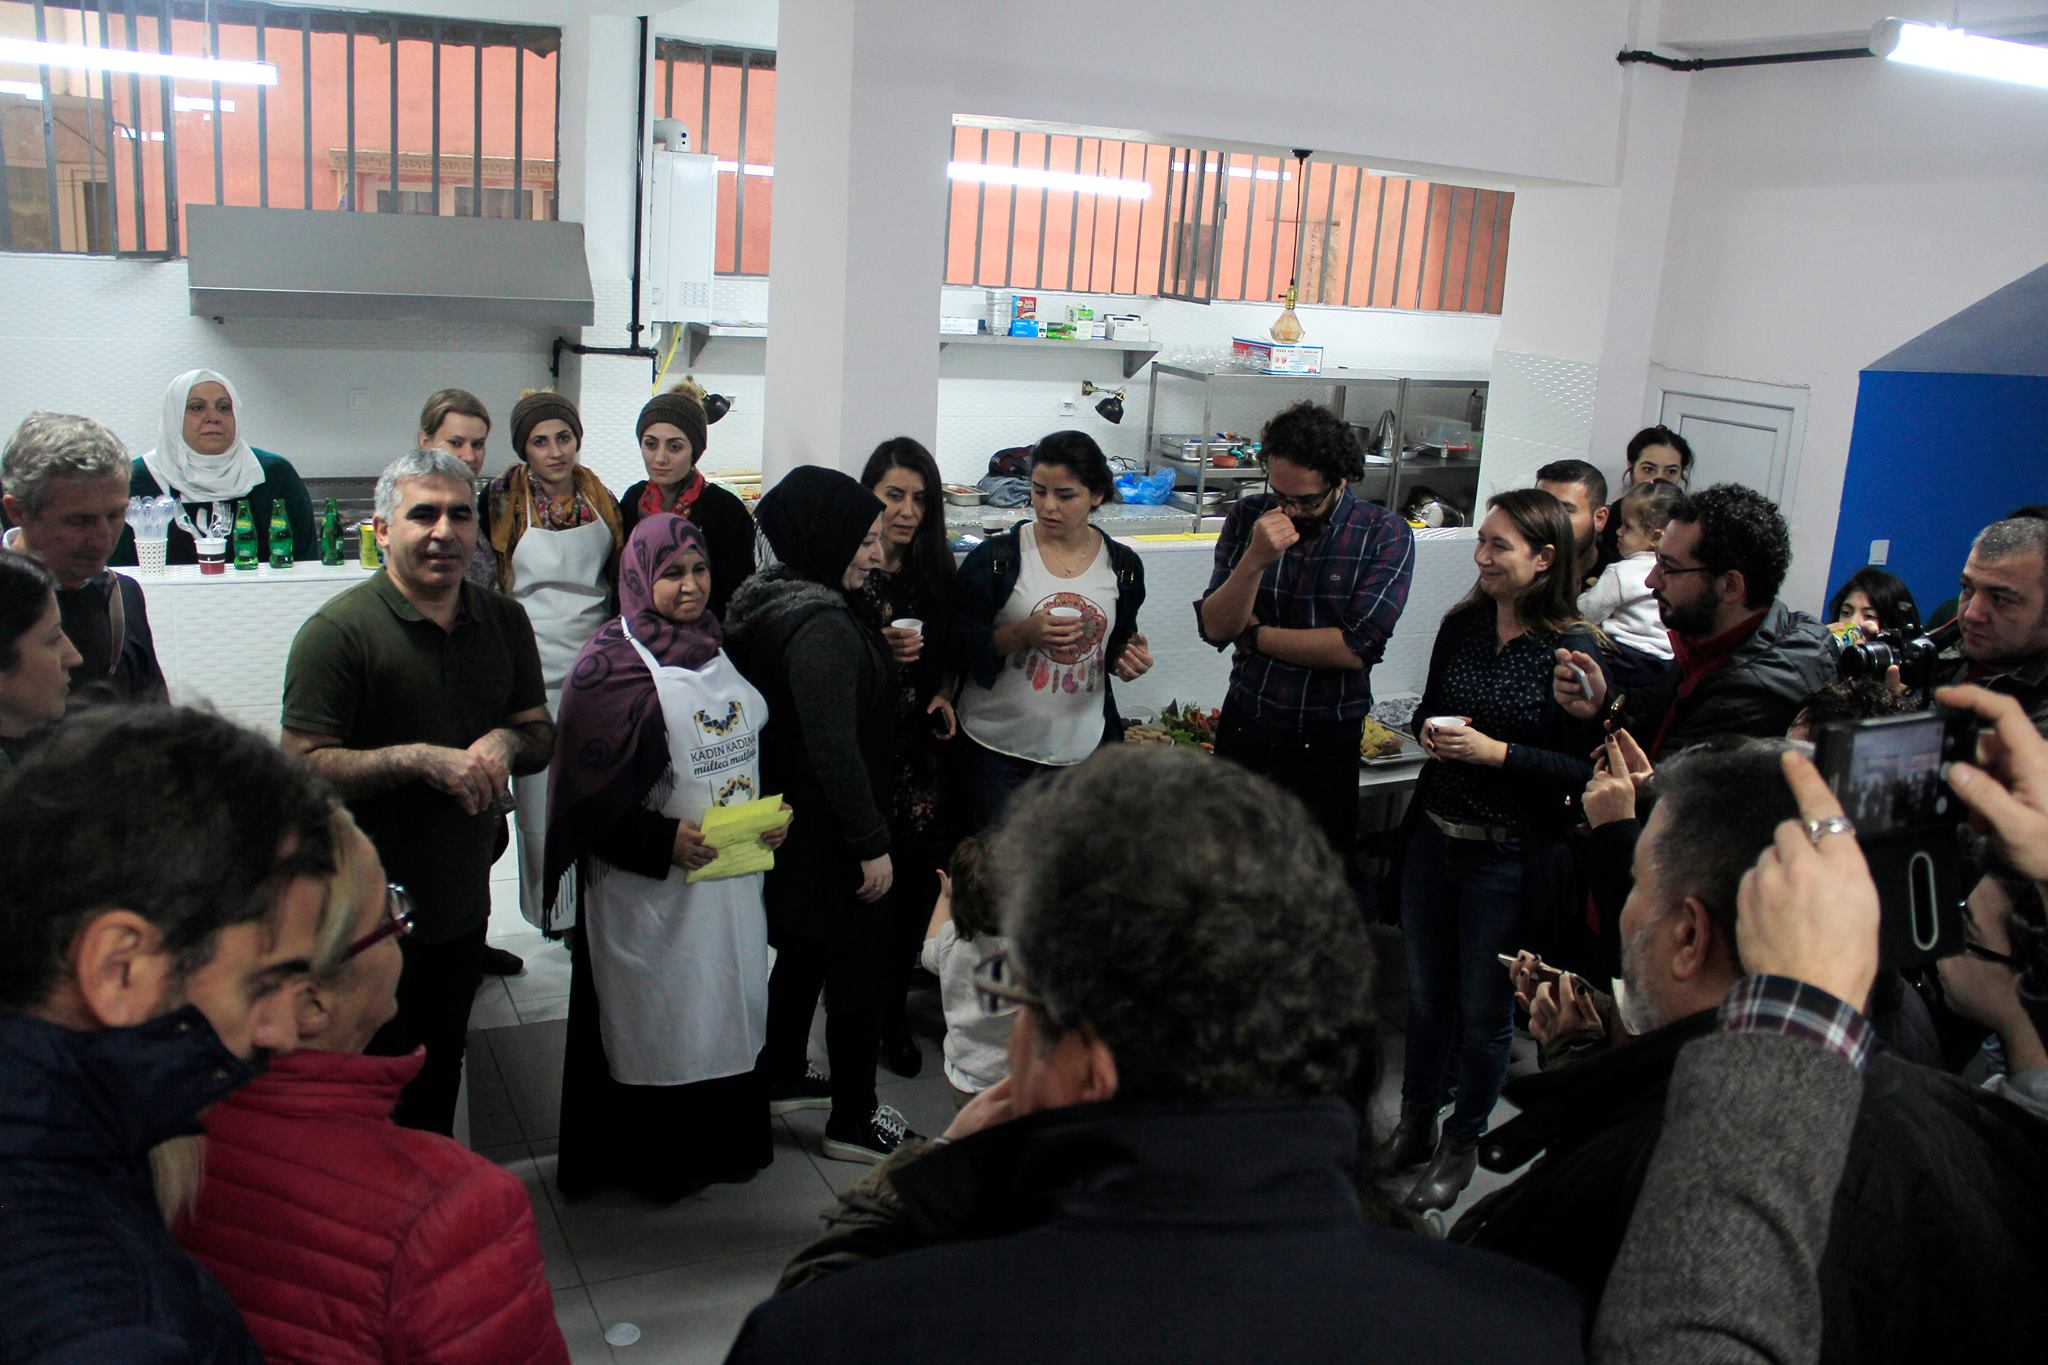 The opening of the 'Woman with Woman Refugee Kitchen', that we have been supporting with the project and conducting architectural design and construction site voluntarily with Aslı Tekin, has been realised. Kitchen that has been formed with the support of Okmeydanı Social Assistance and Solidarity Association in İstanbul is active by the common labor of Syrians and Turkish women neighbors who are living in the neighborhood.